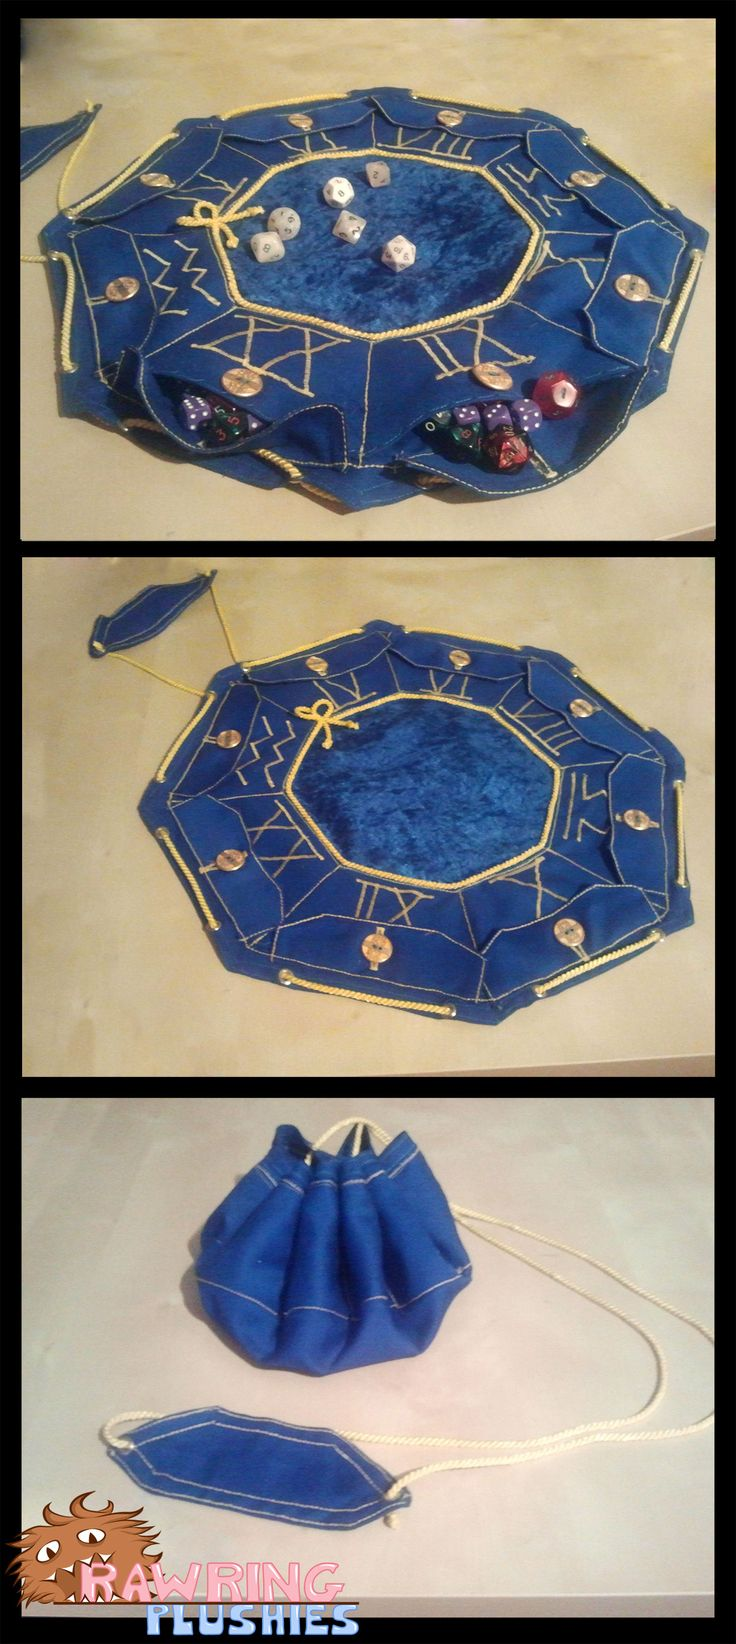 The Wizard's Pouch. Personally I think it'd be great also as a healers 'herb' pouch a poisoner's 'poison' pouch, or a diviner's 'divining' pouch where they could use each pocket for different diving tools! :)